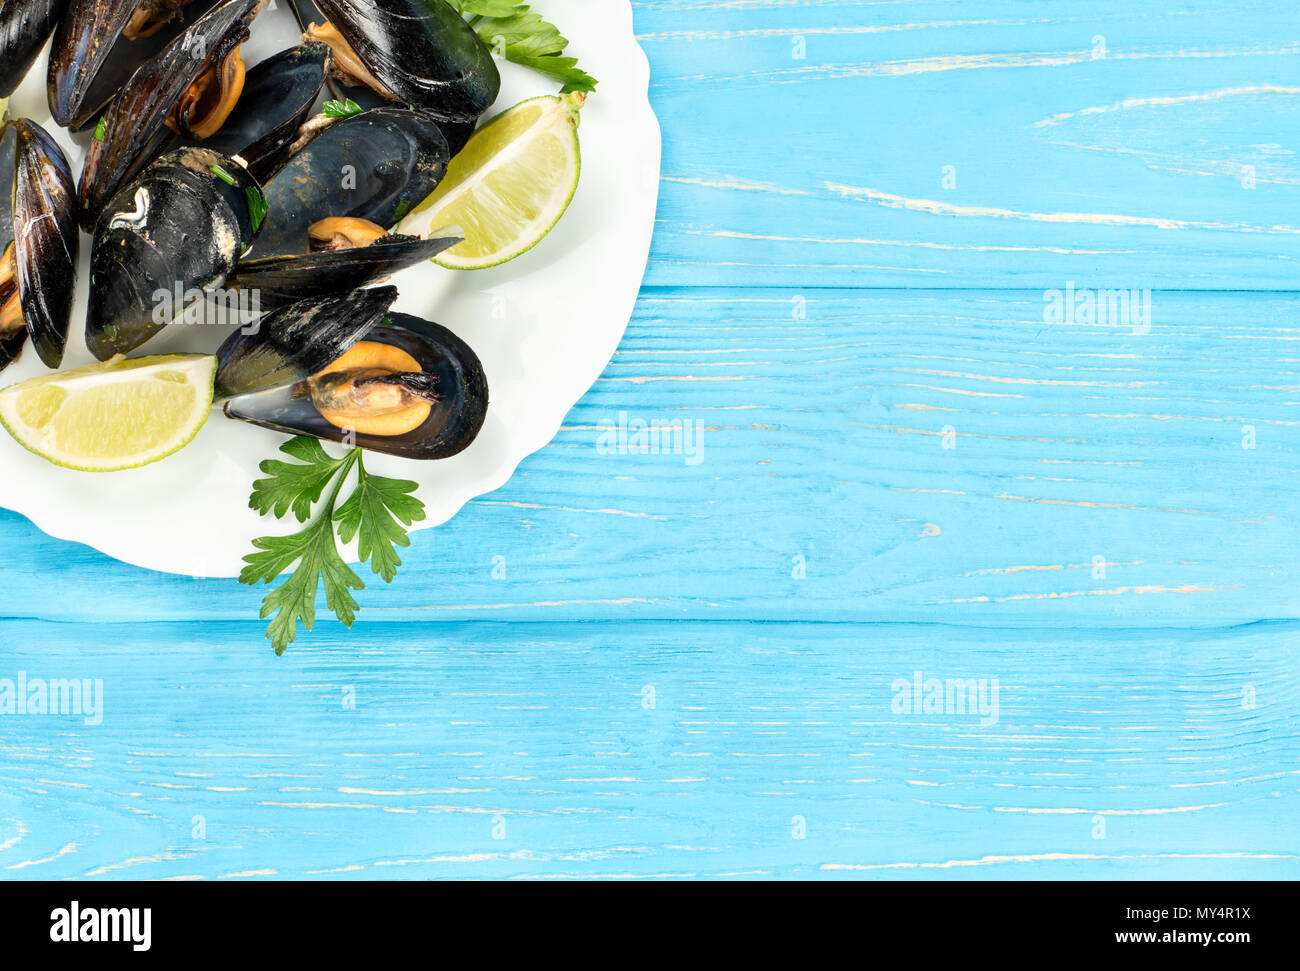 Part of a white plate with cooked mussels on a blank wooden background - Stock Image